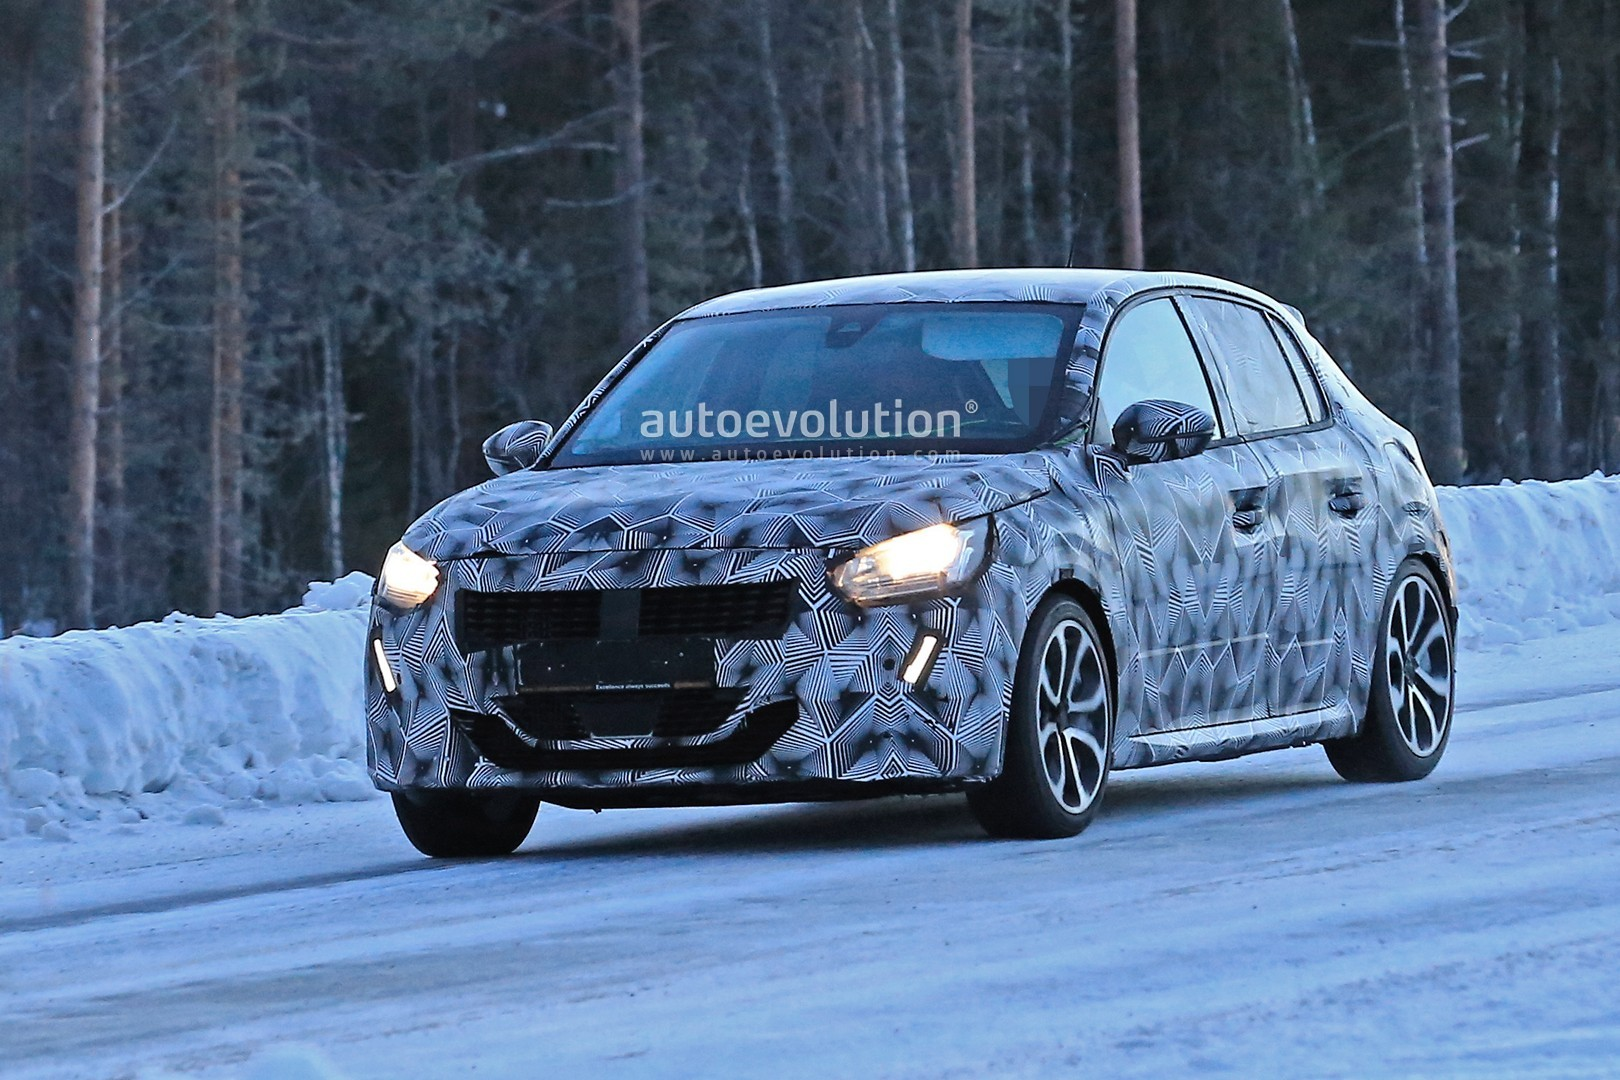 2020 Peugeot 208 Winter Spyshots Might Show GT or GTi ...